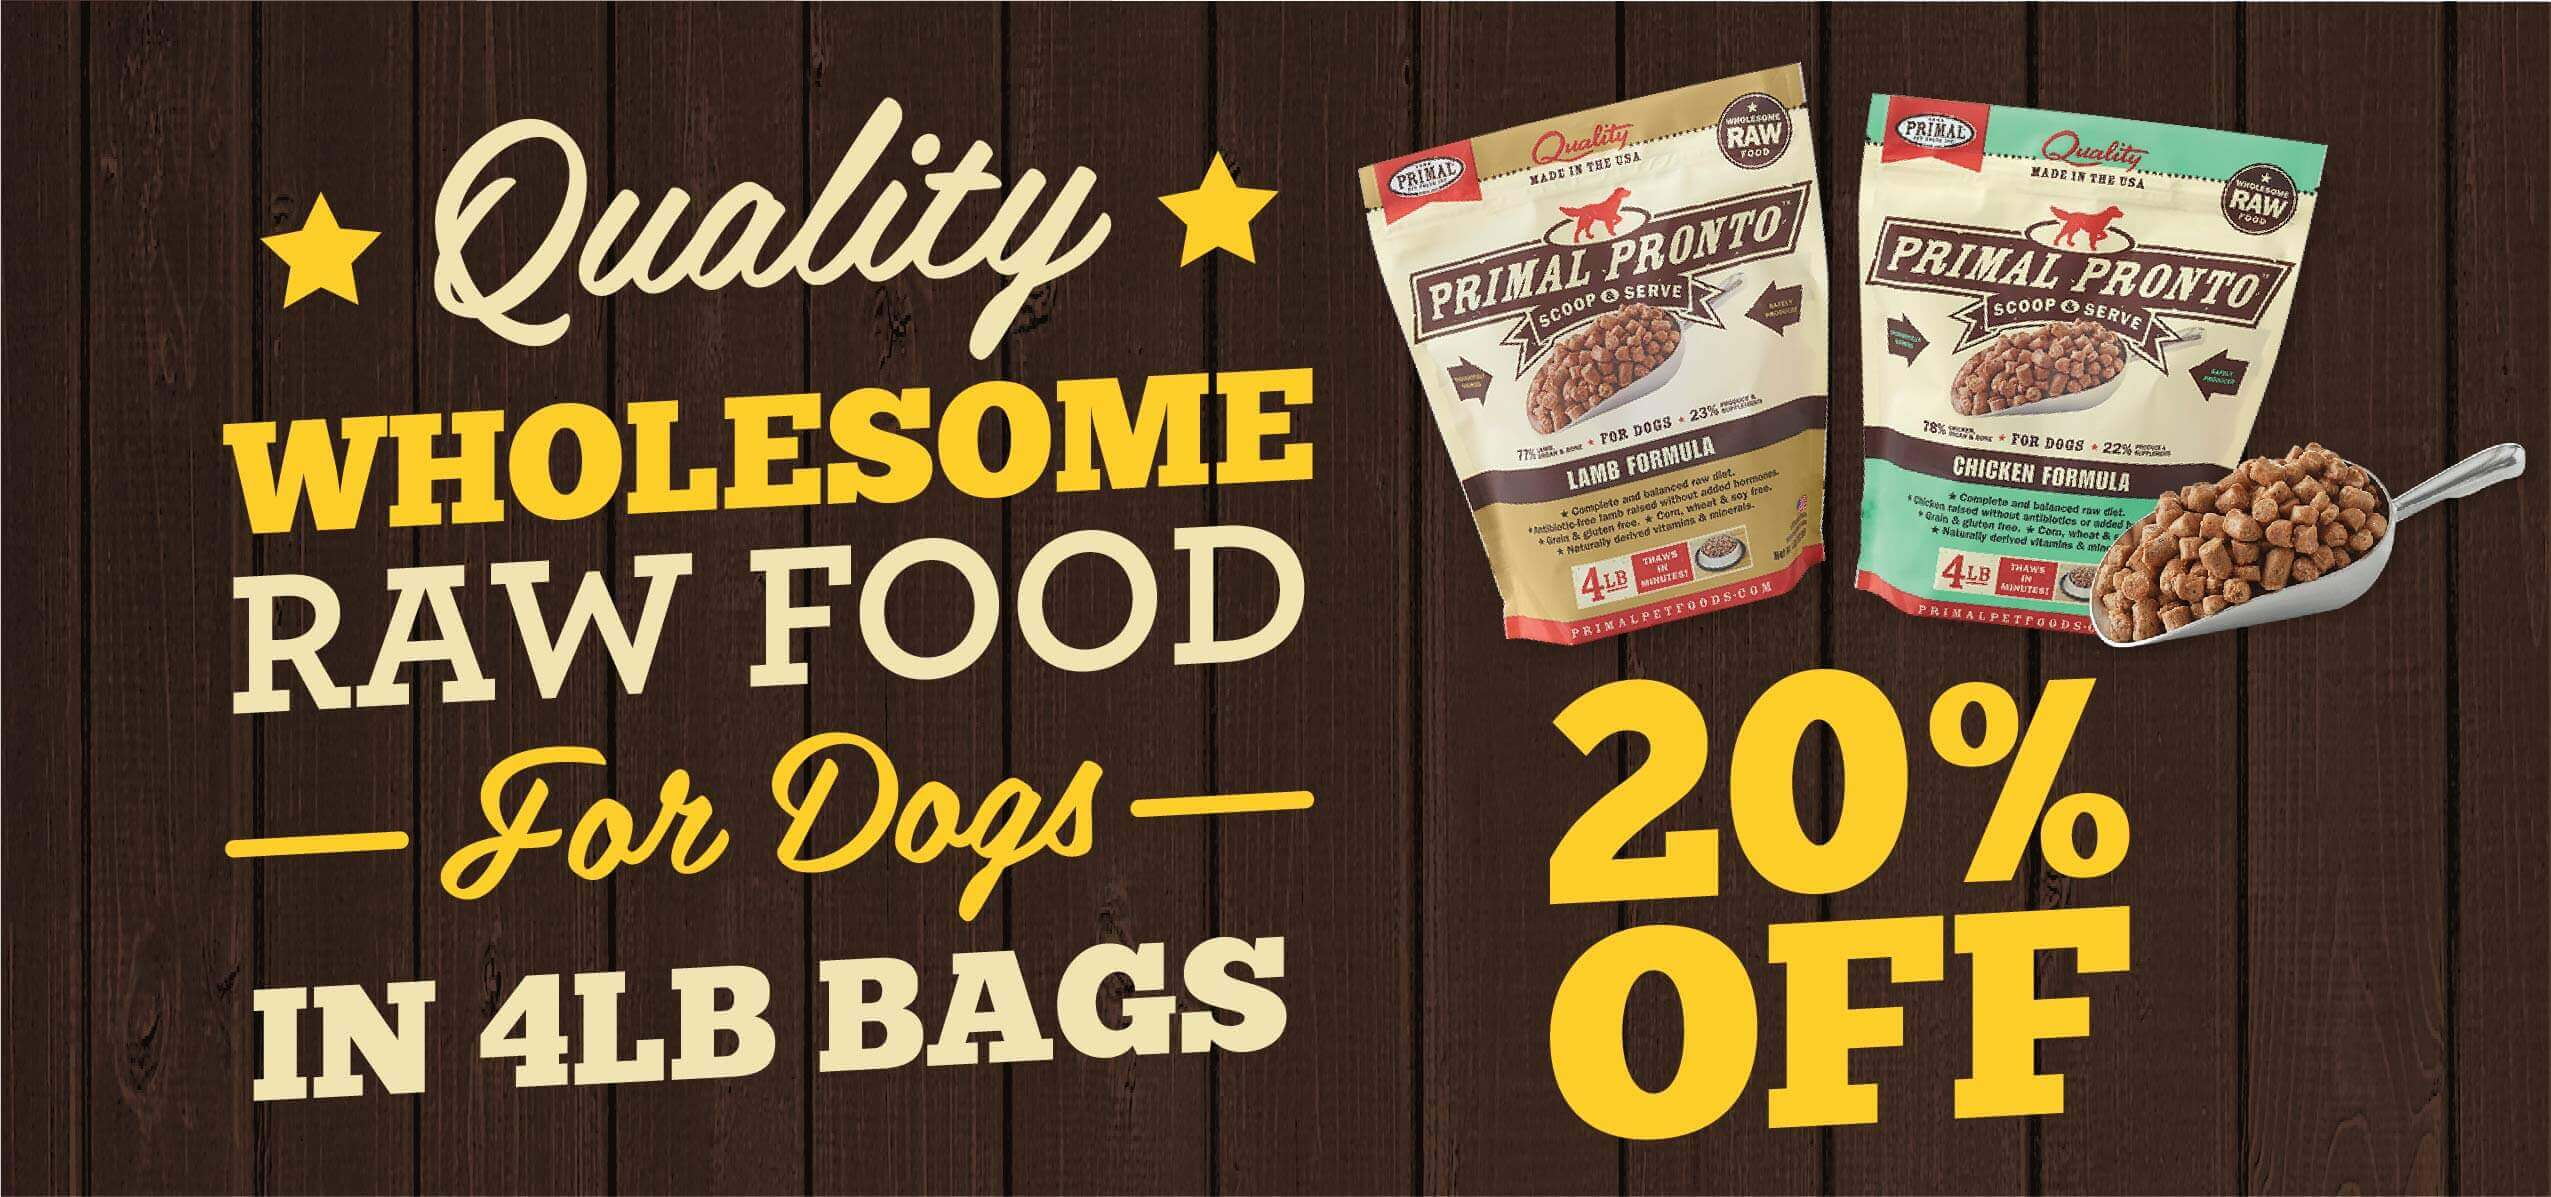 Primal Pet Food 4lb Bags - 20% Off